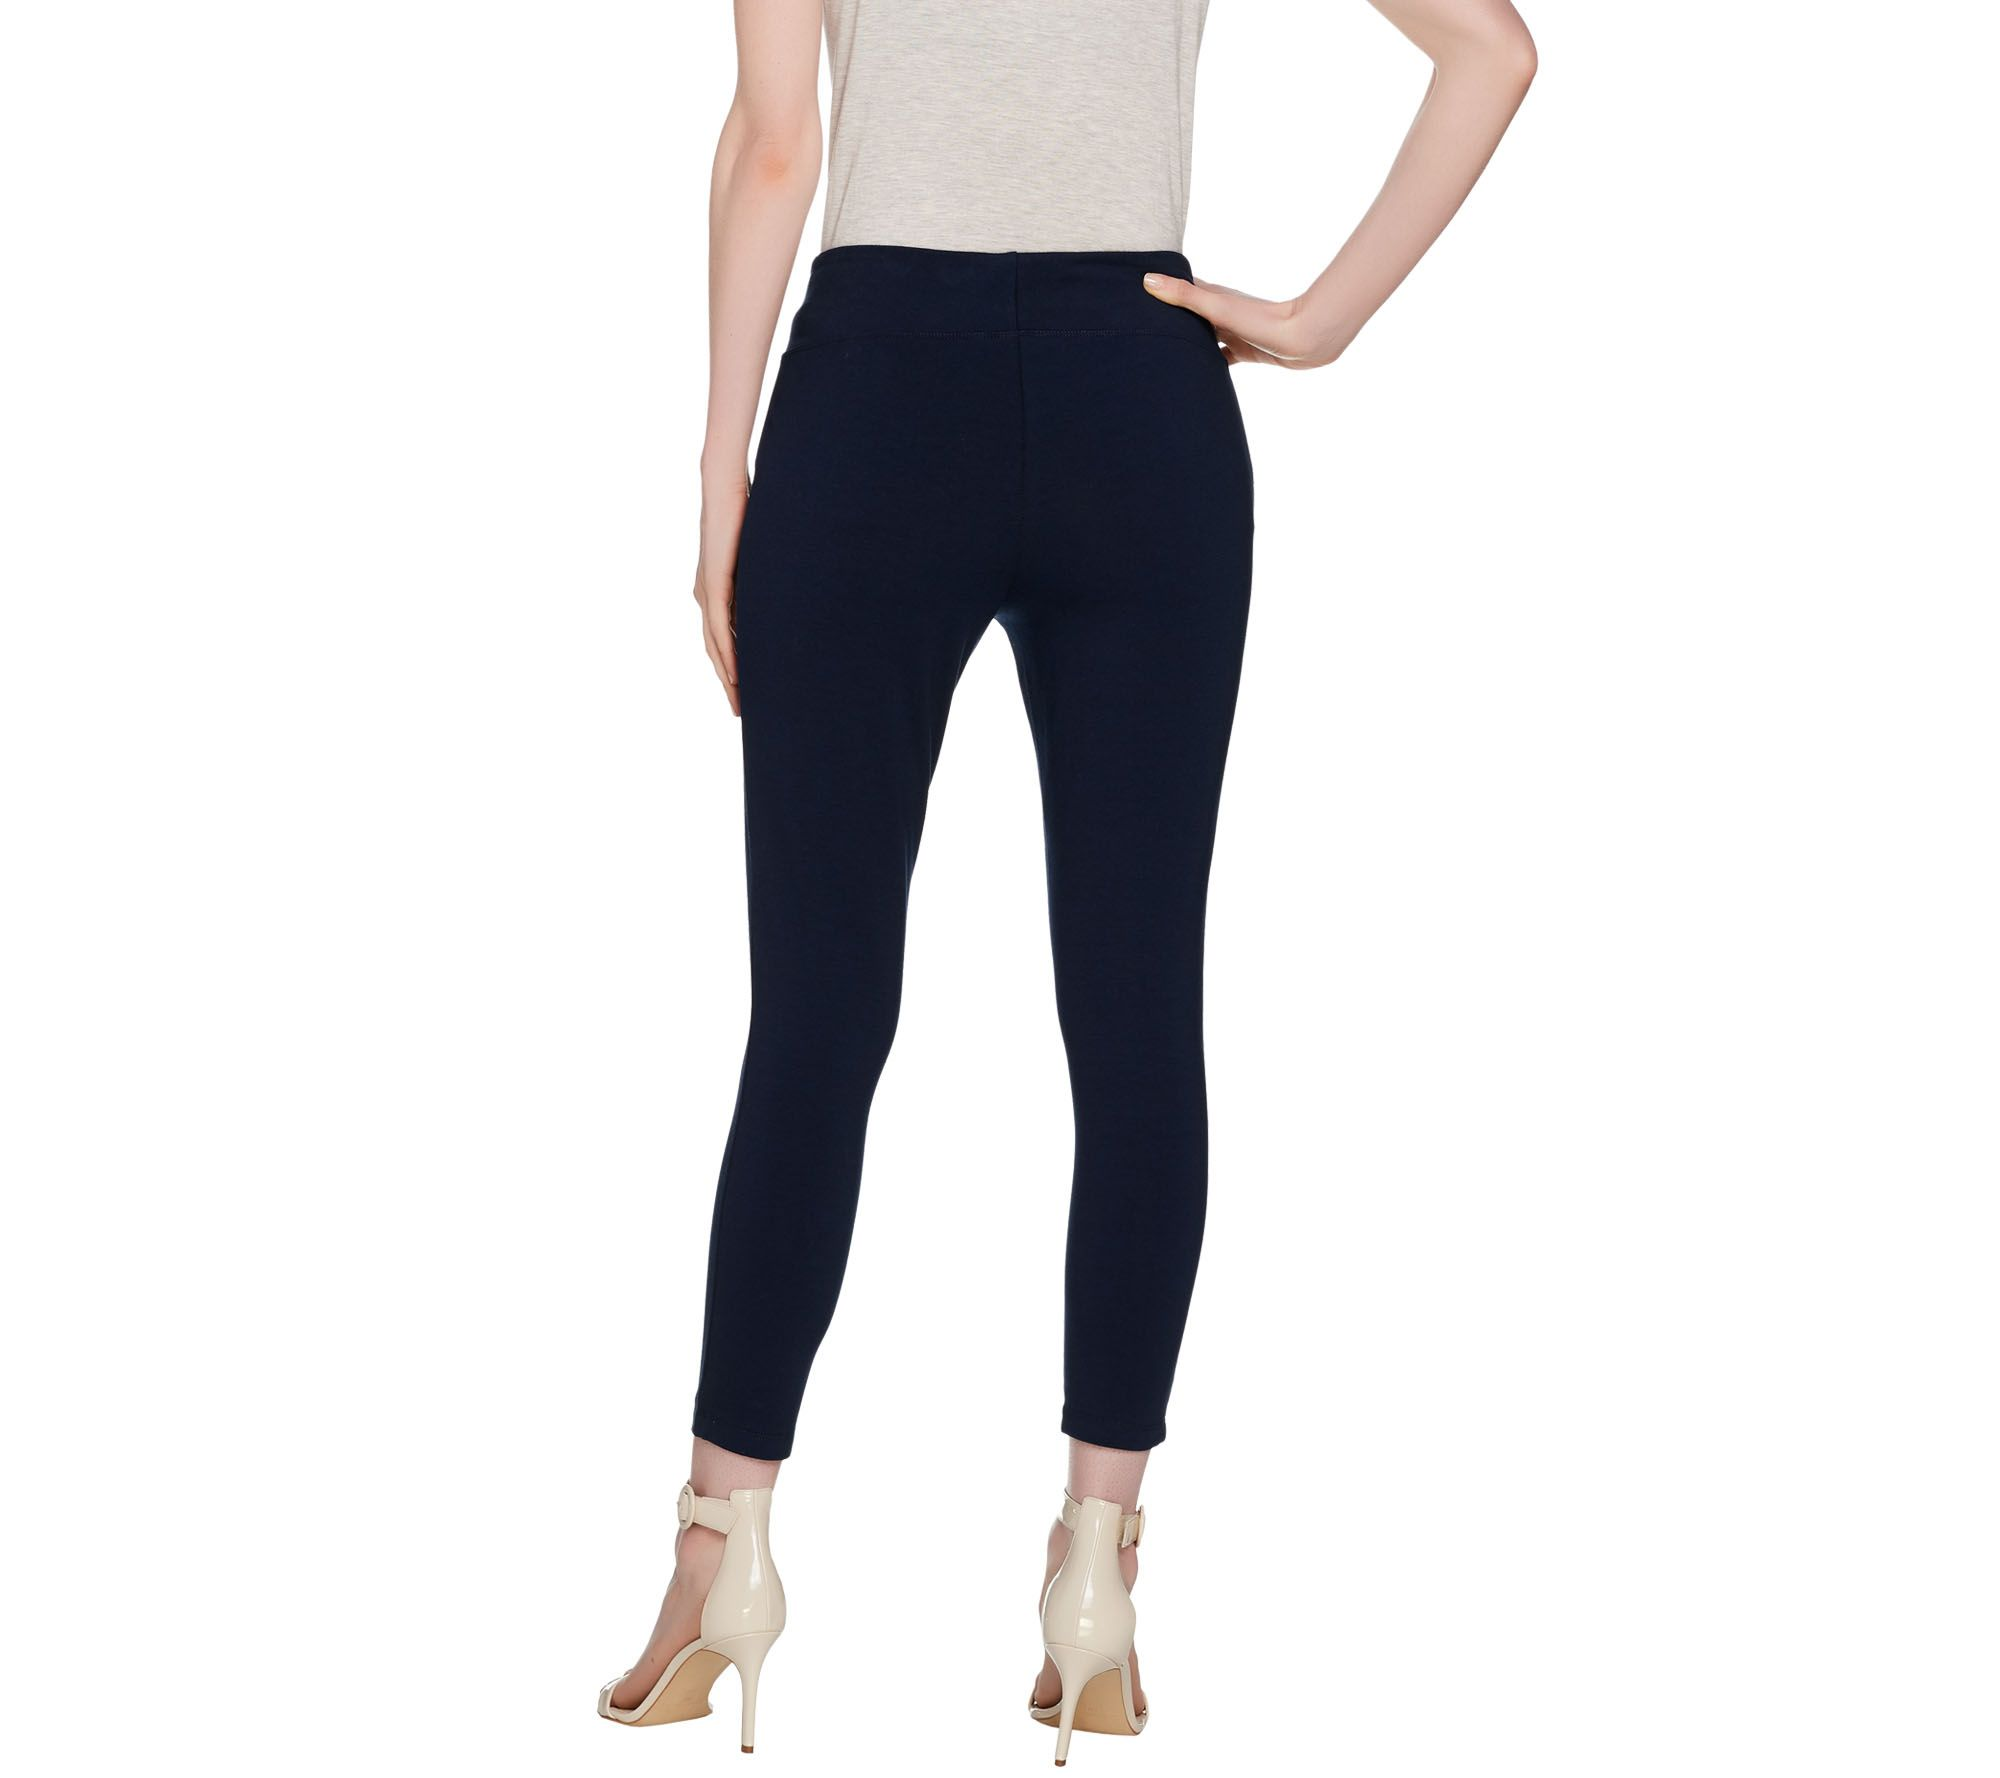 1f57278a6e9aa Wicked by Women with Control Petite Cropped Knit Leggings - Page 1 — QVC.com